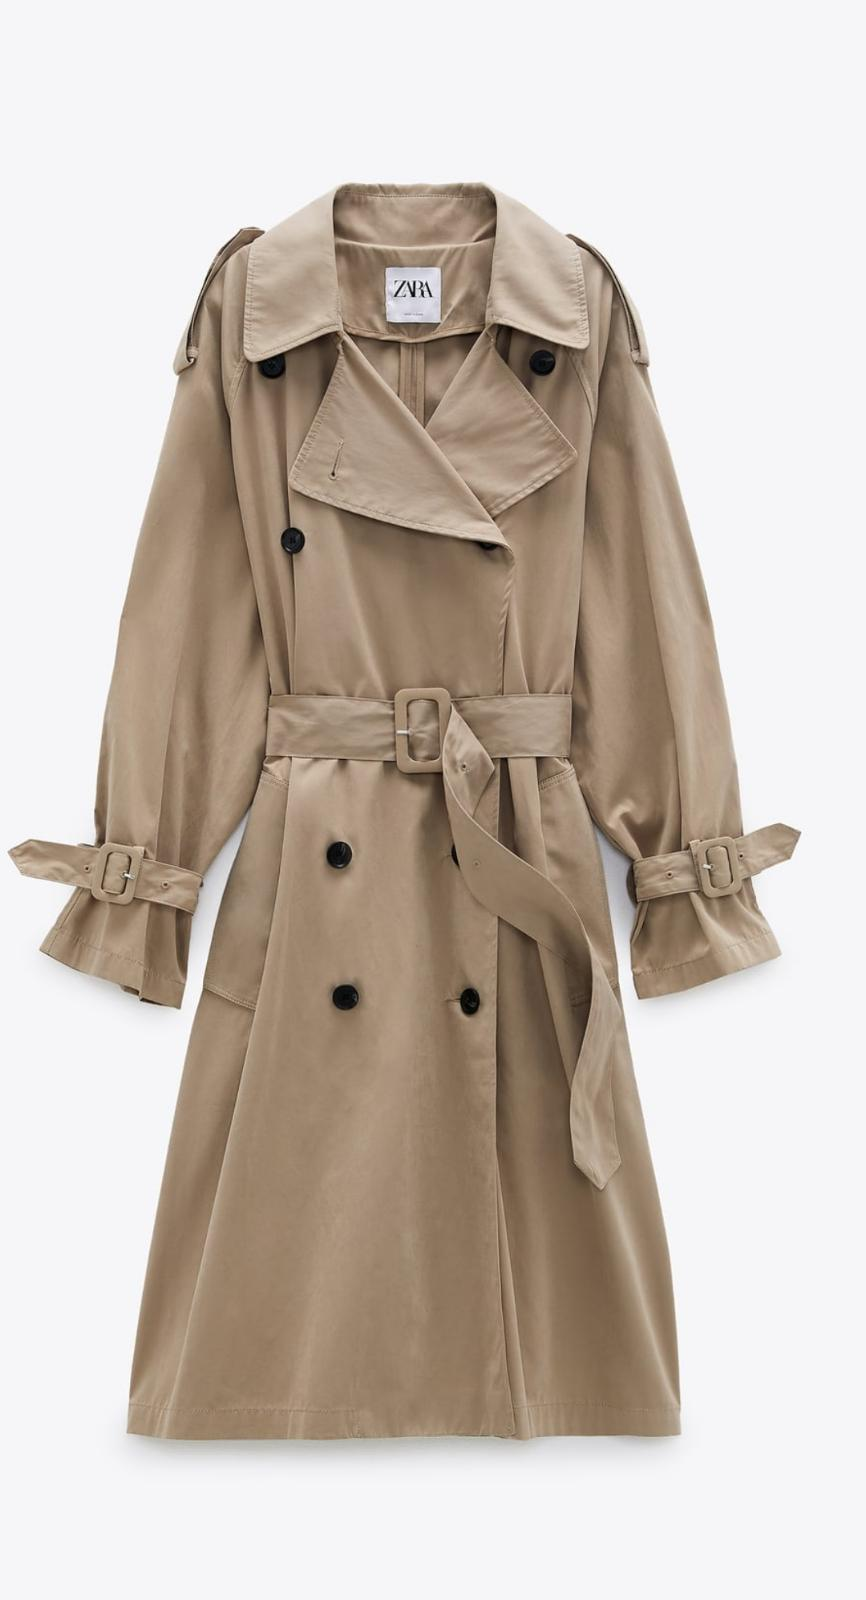 Trench water-repellent Limited Edition de color beige oscuro, de Zara (59'95€)